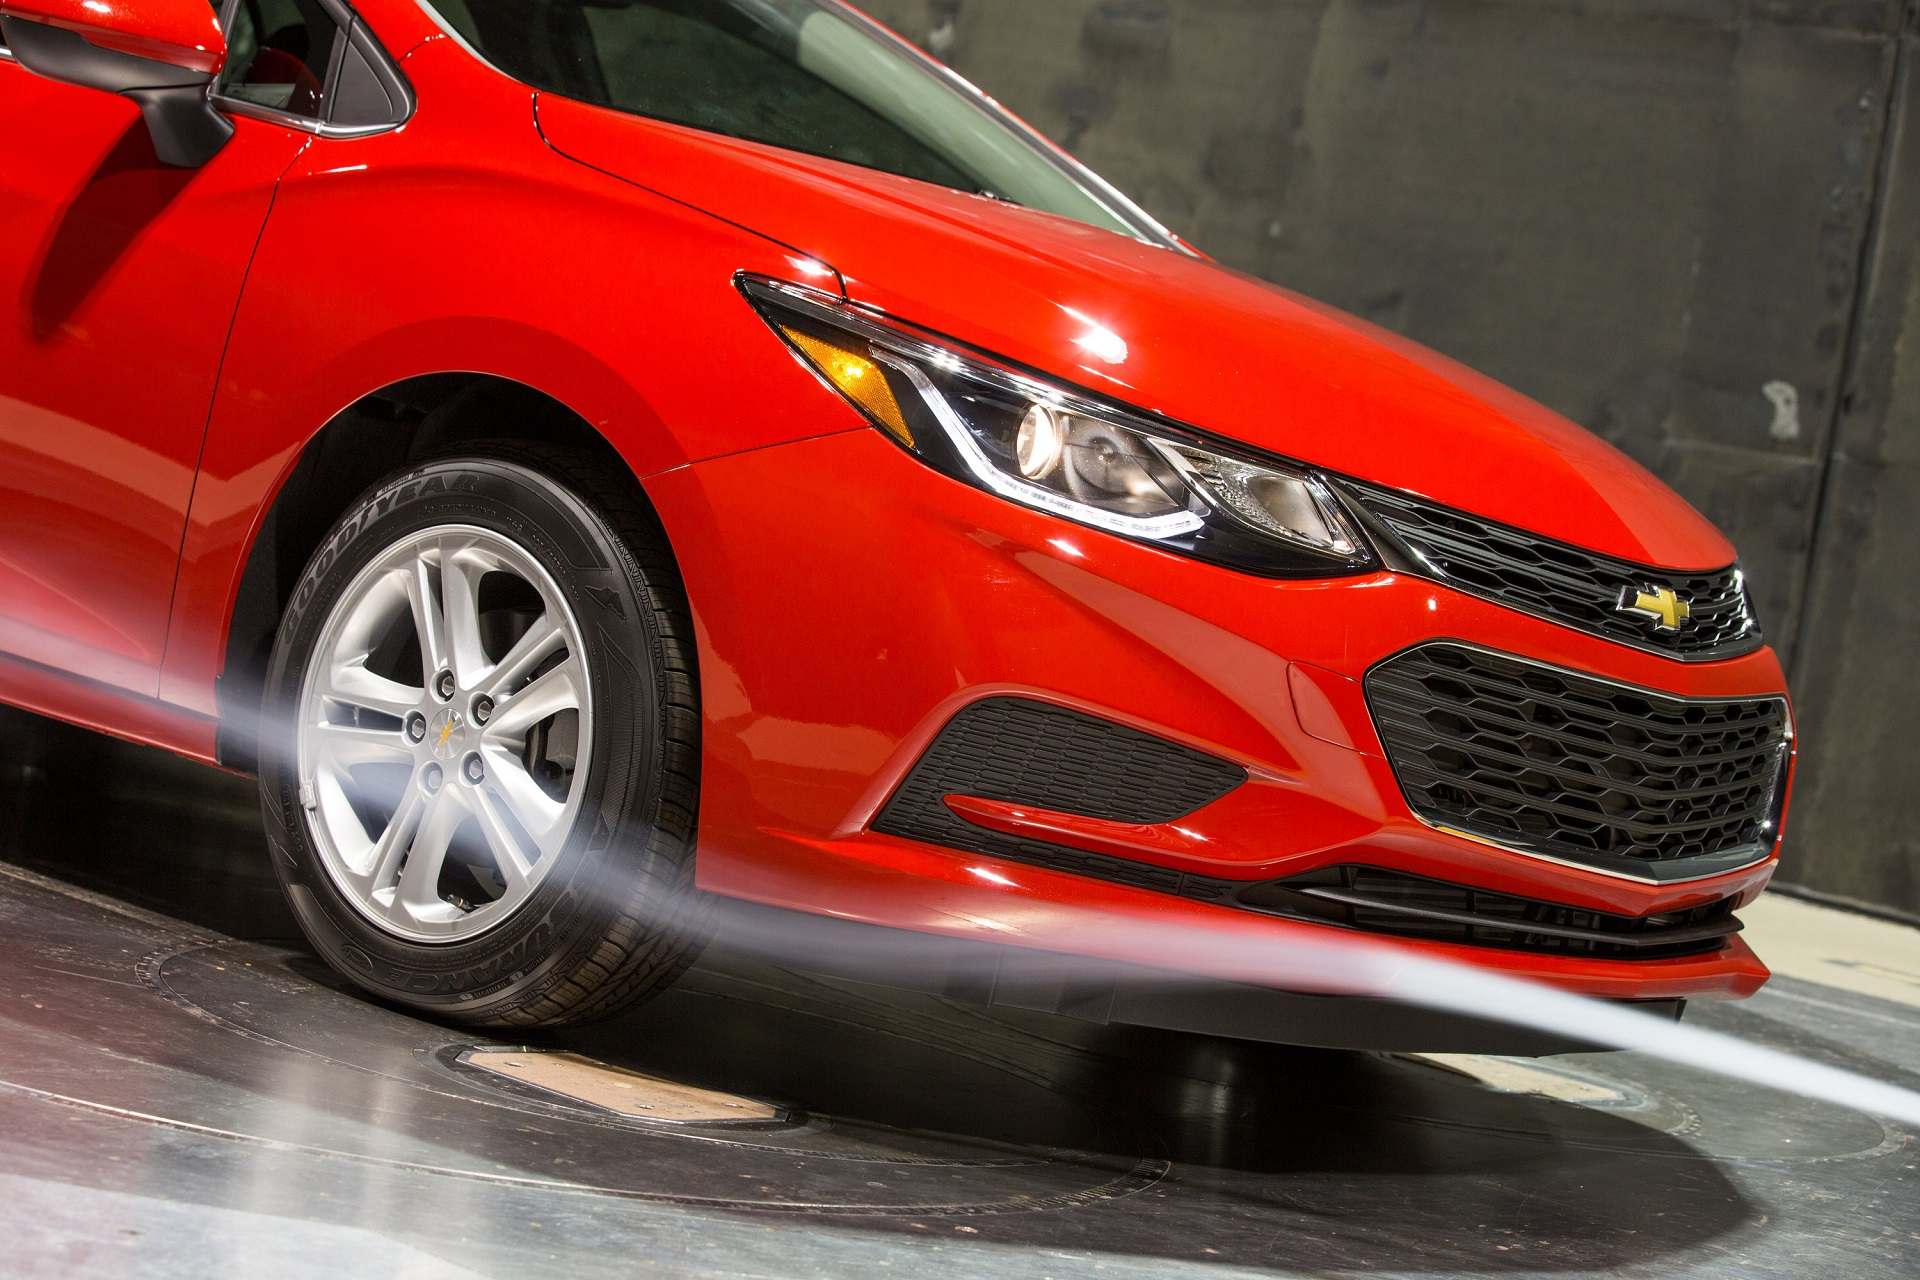 112,000 Chevrolet Cruze compact cars recalled over ...